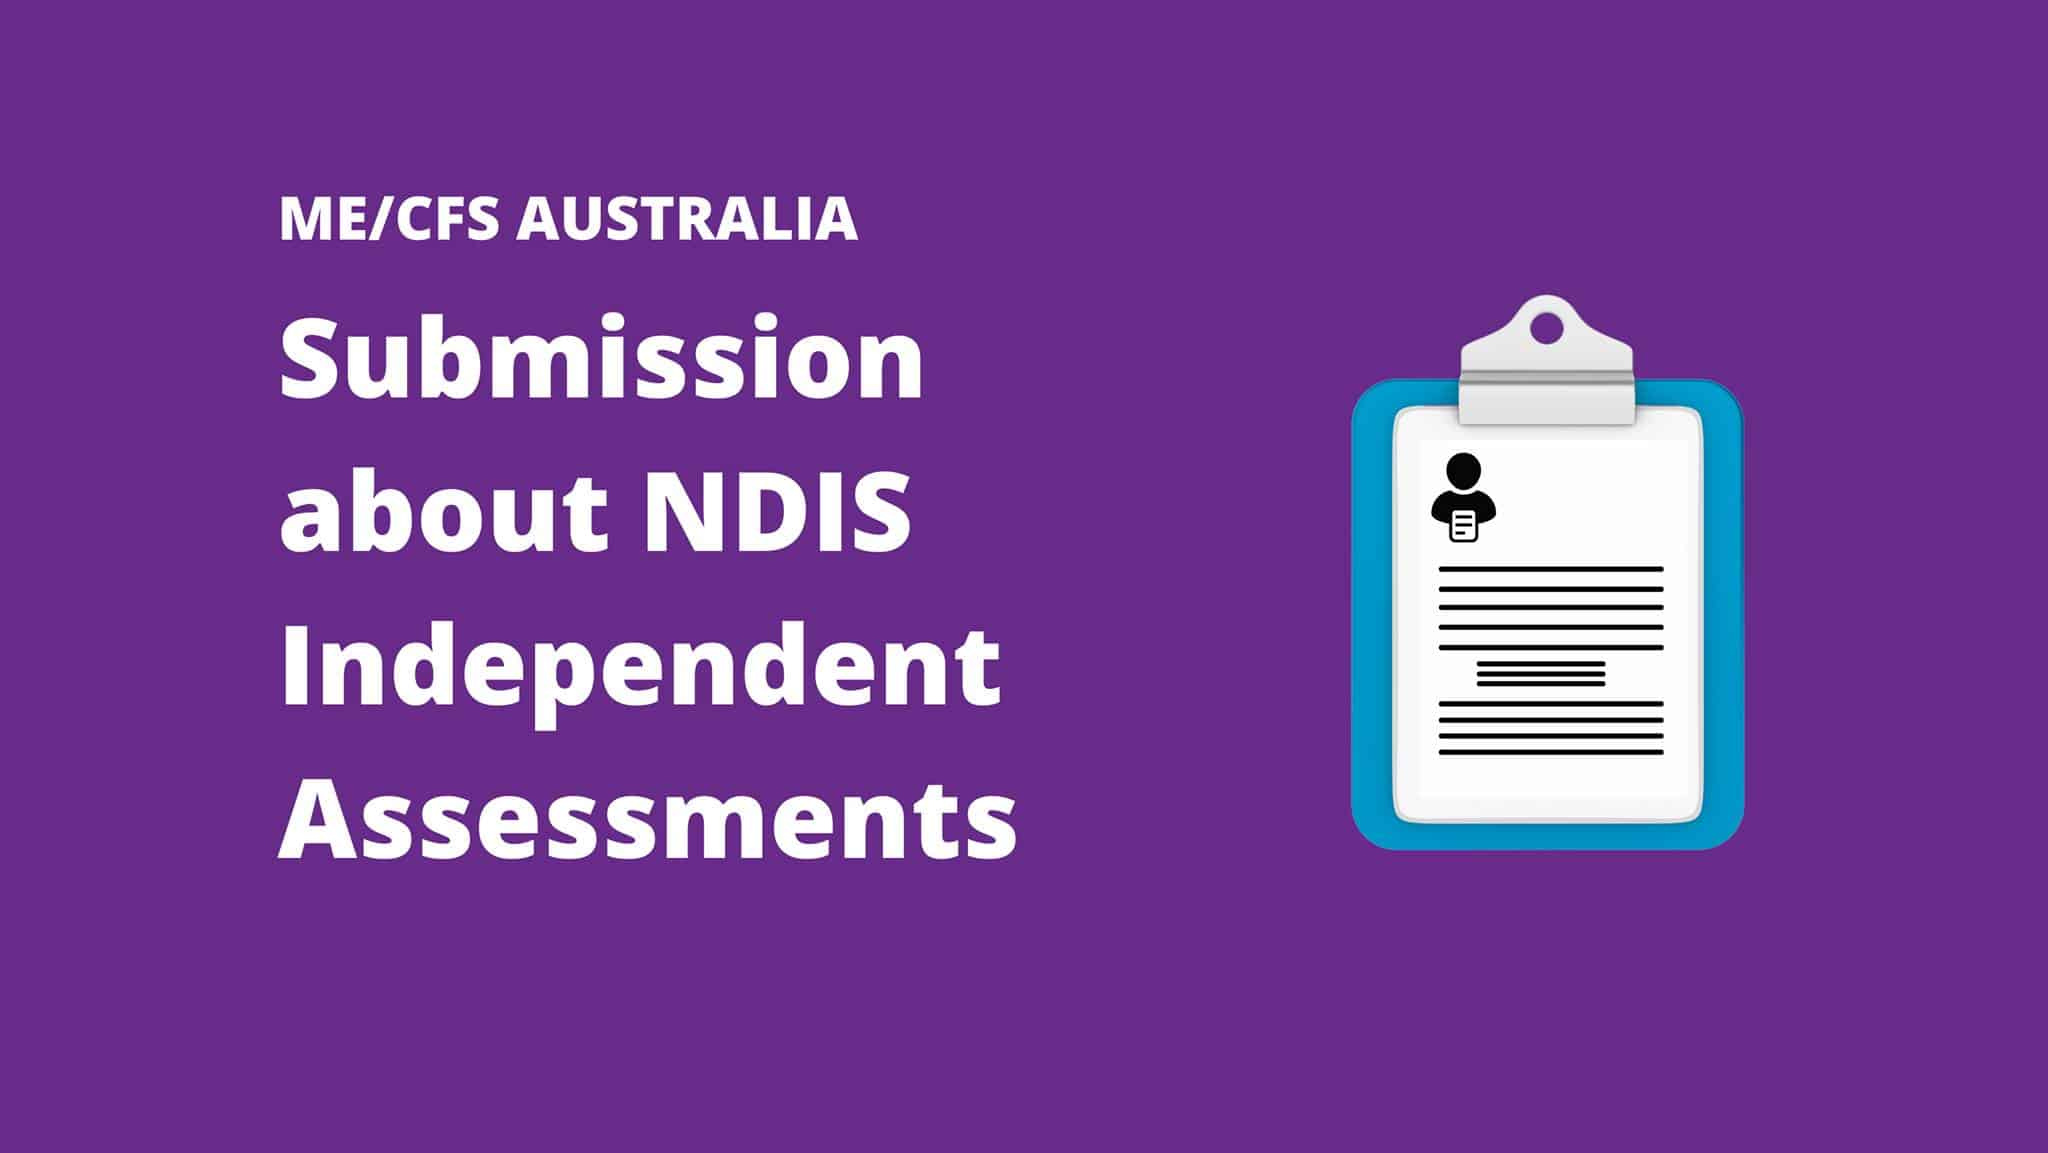 Submission to the National Disability Insurance Scheme Inquiry into Independent Assessments